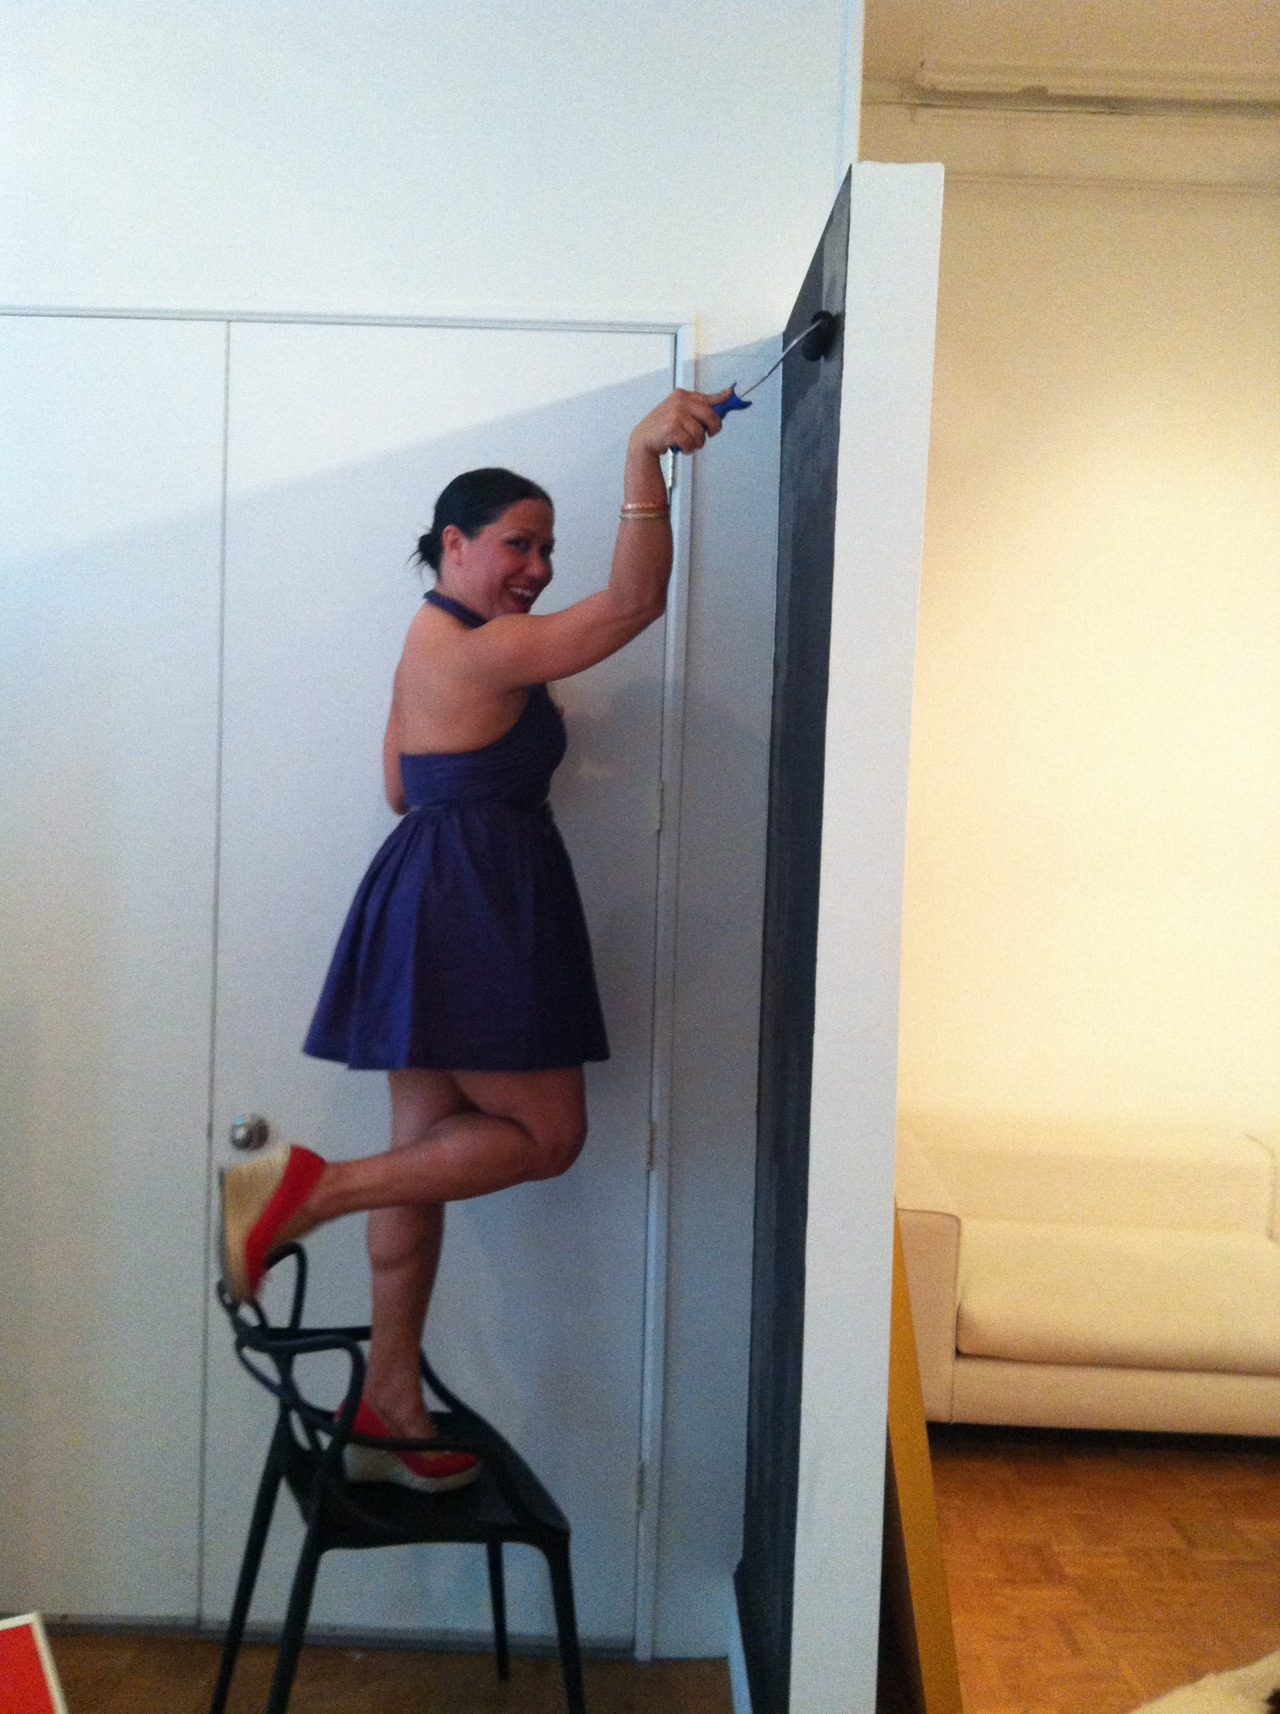 This is how we paint the office. Who needs a drop cloth?